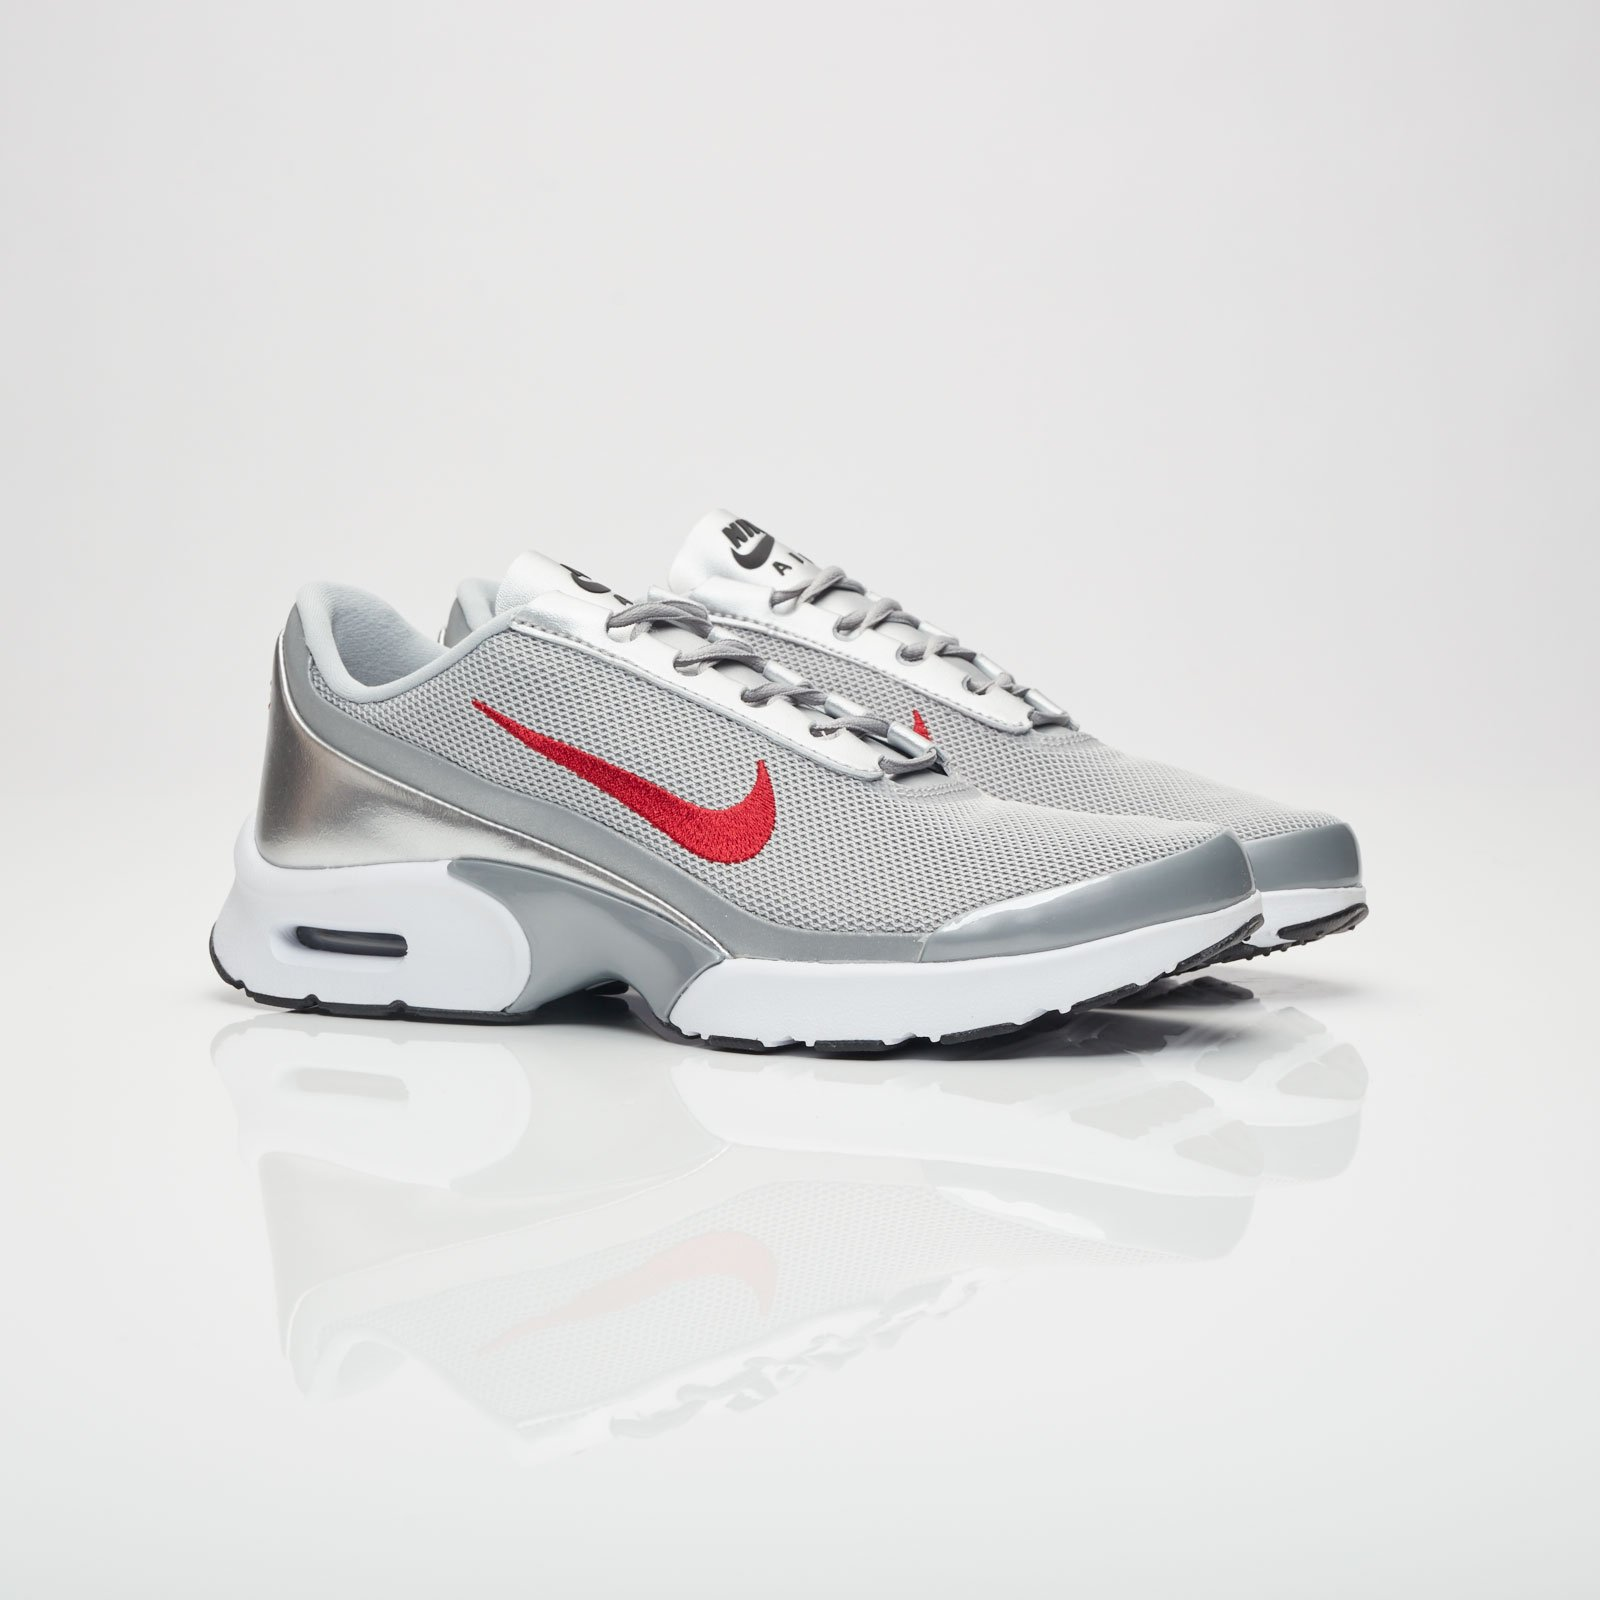 a6ffe5ed3a Nike Air Max Jewell QS - 910313-001 - Sneakersnstuff   sneakers ...